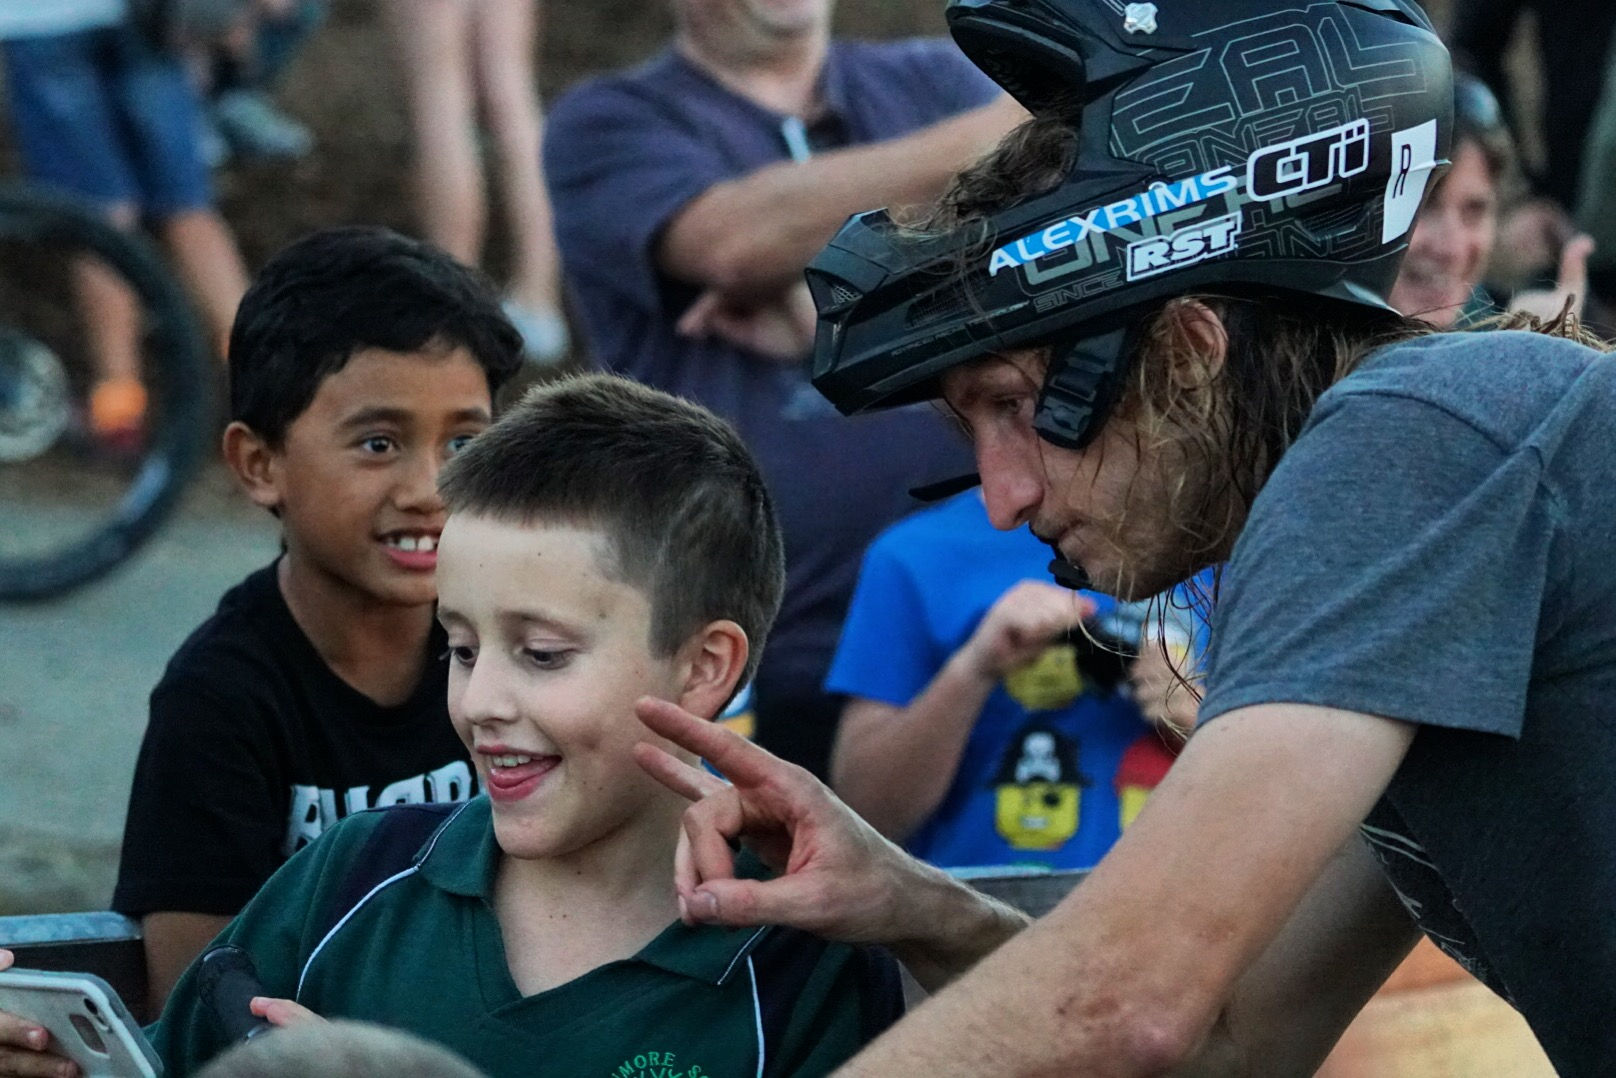 It was selfie and autograph heaven for the kids. My #2 photographer Joseph Carter getting the goods with Jakub Vencal, the Speed and Style winner.  photo: Jeff carter